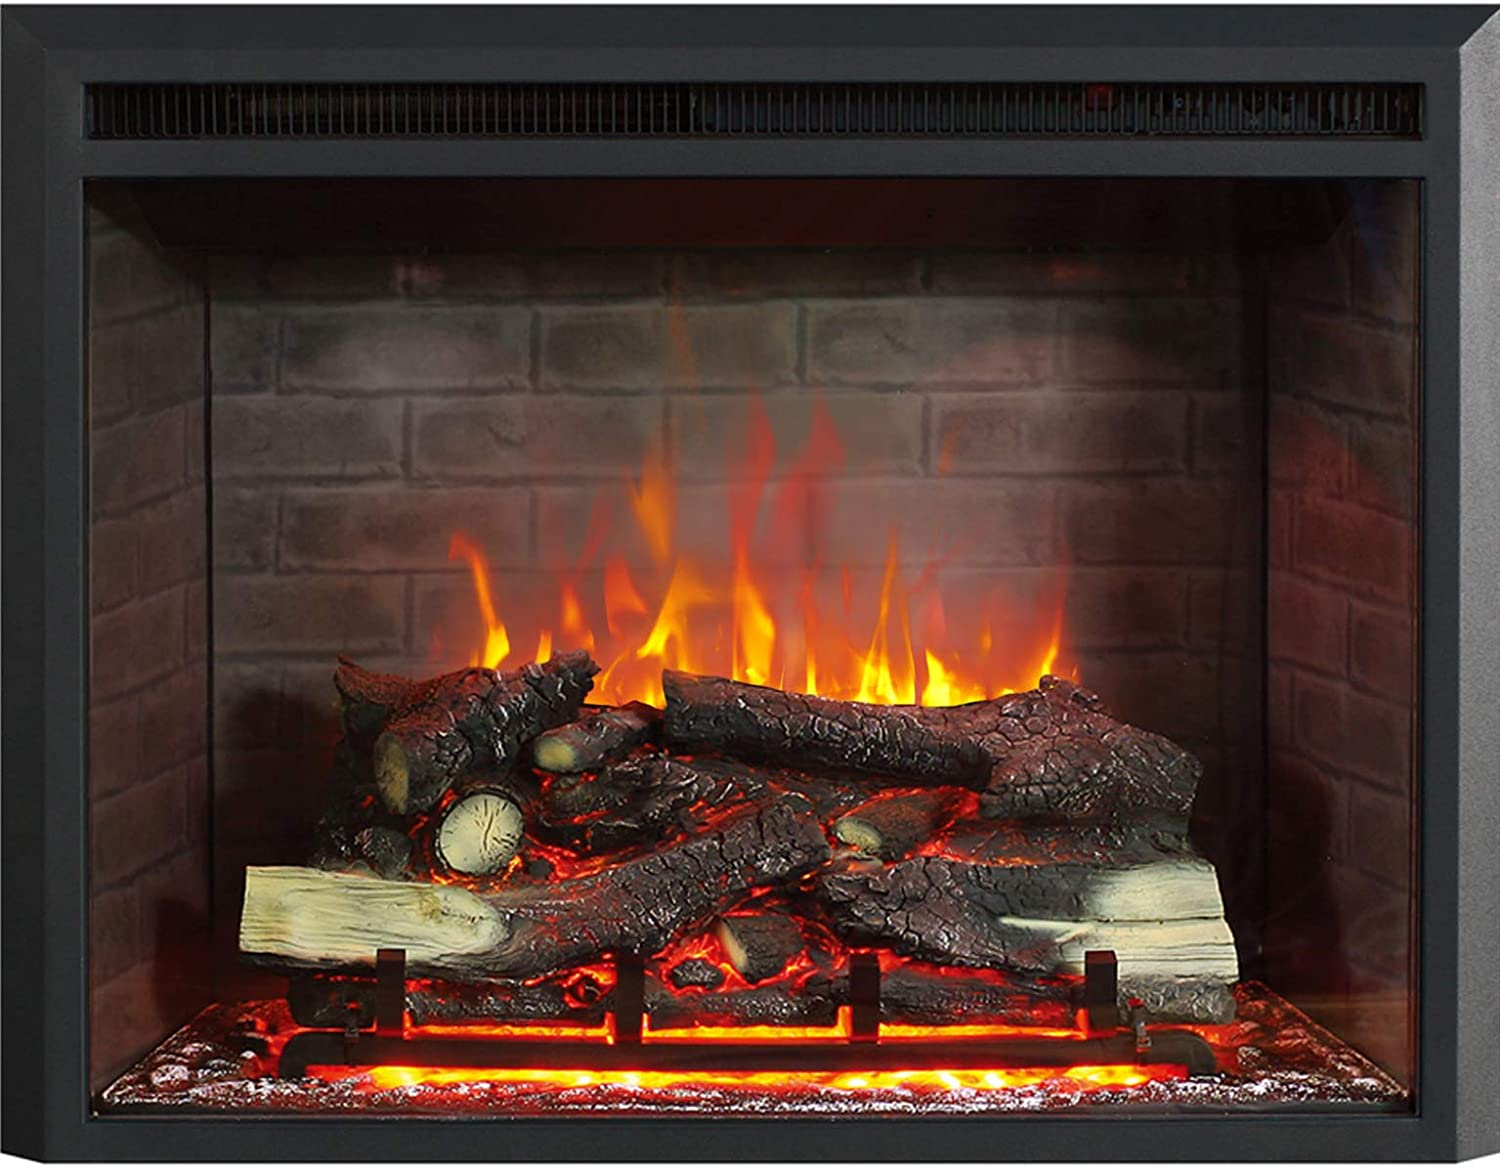 RICHFLAME 20 Inches, 20 Inches High, Gavin Electric Fireplace Insert with  Simulation Brick Interior, Fire Crackling Sound, Remote Control, 20/20W,  ...